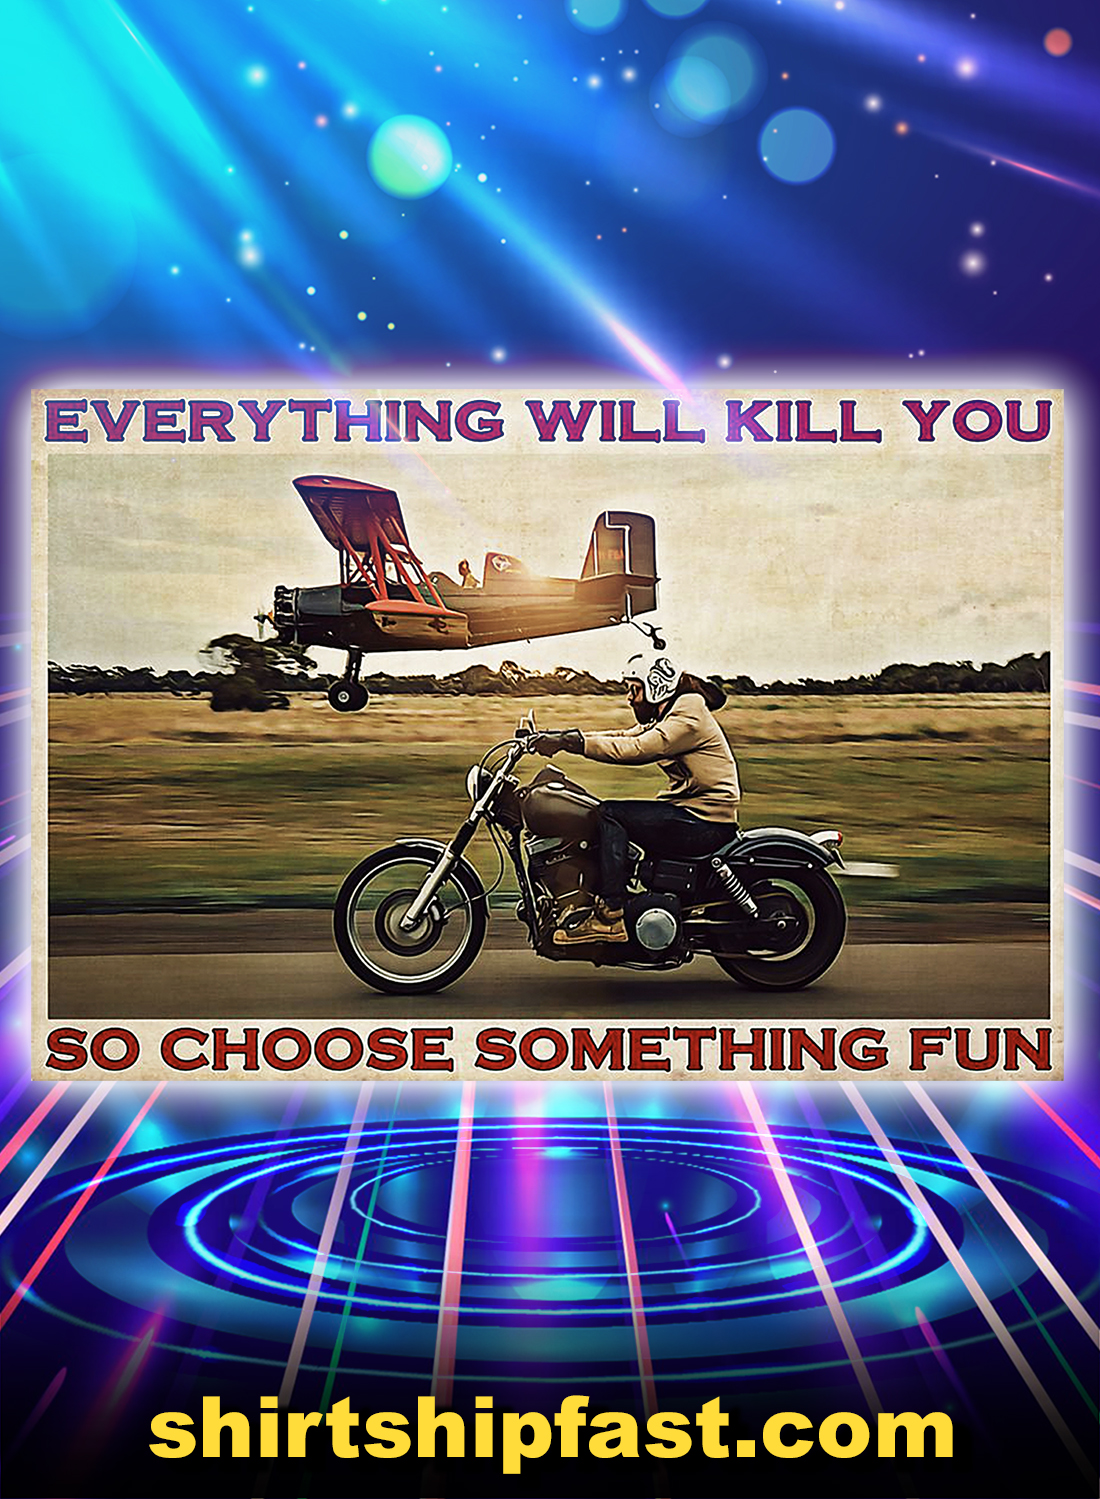 Motorbike planes everything will kill you so choose something fun poster - A4